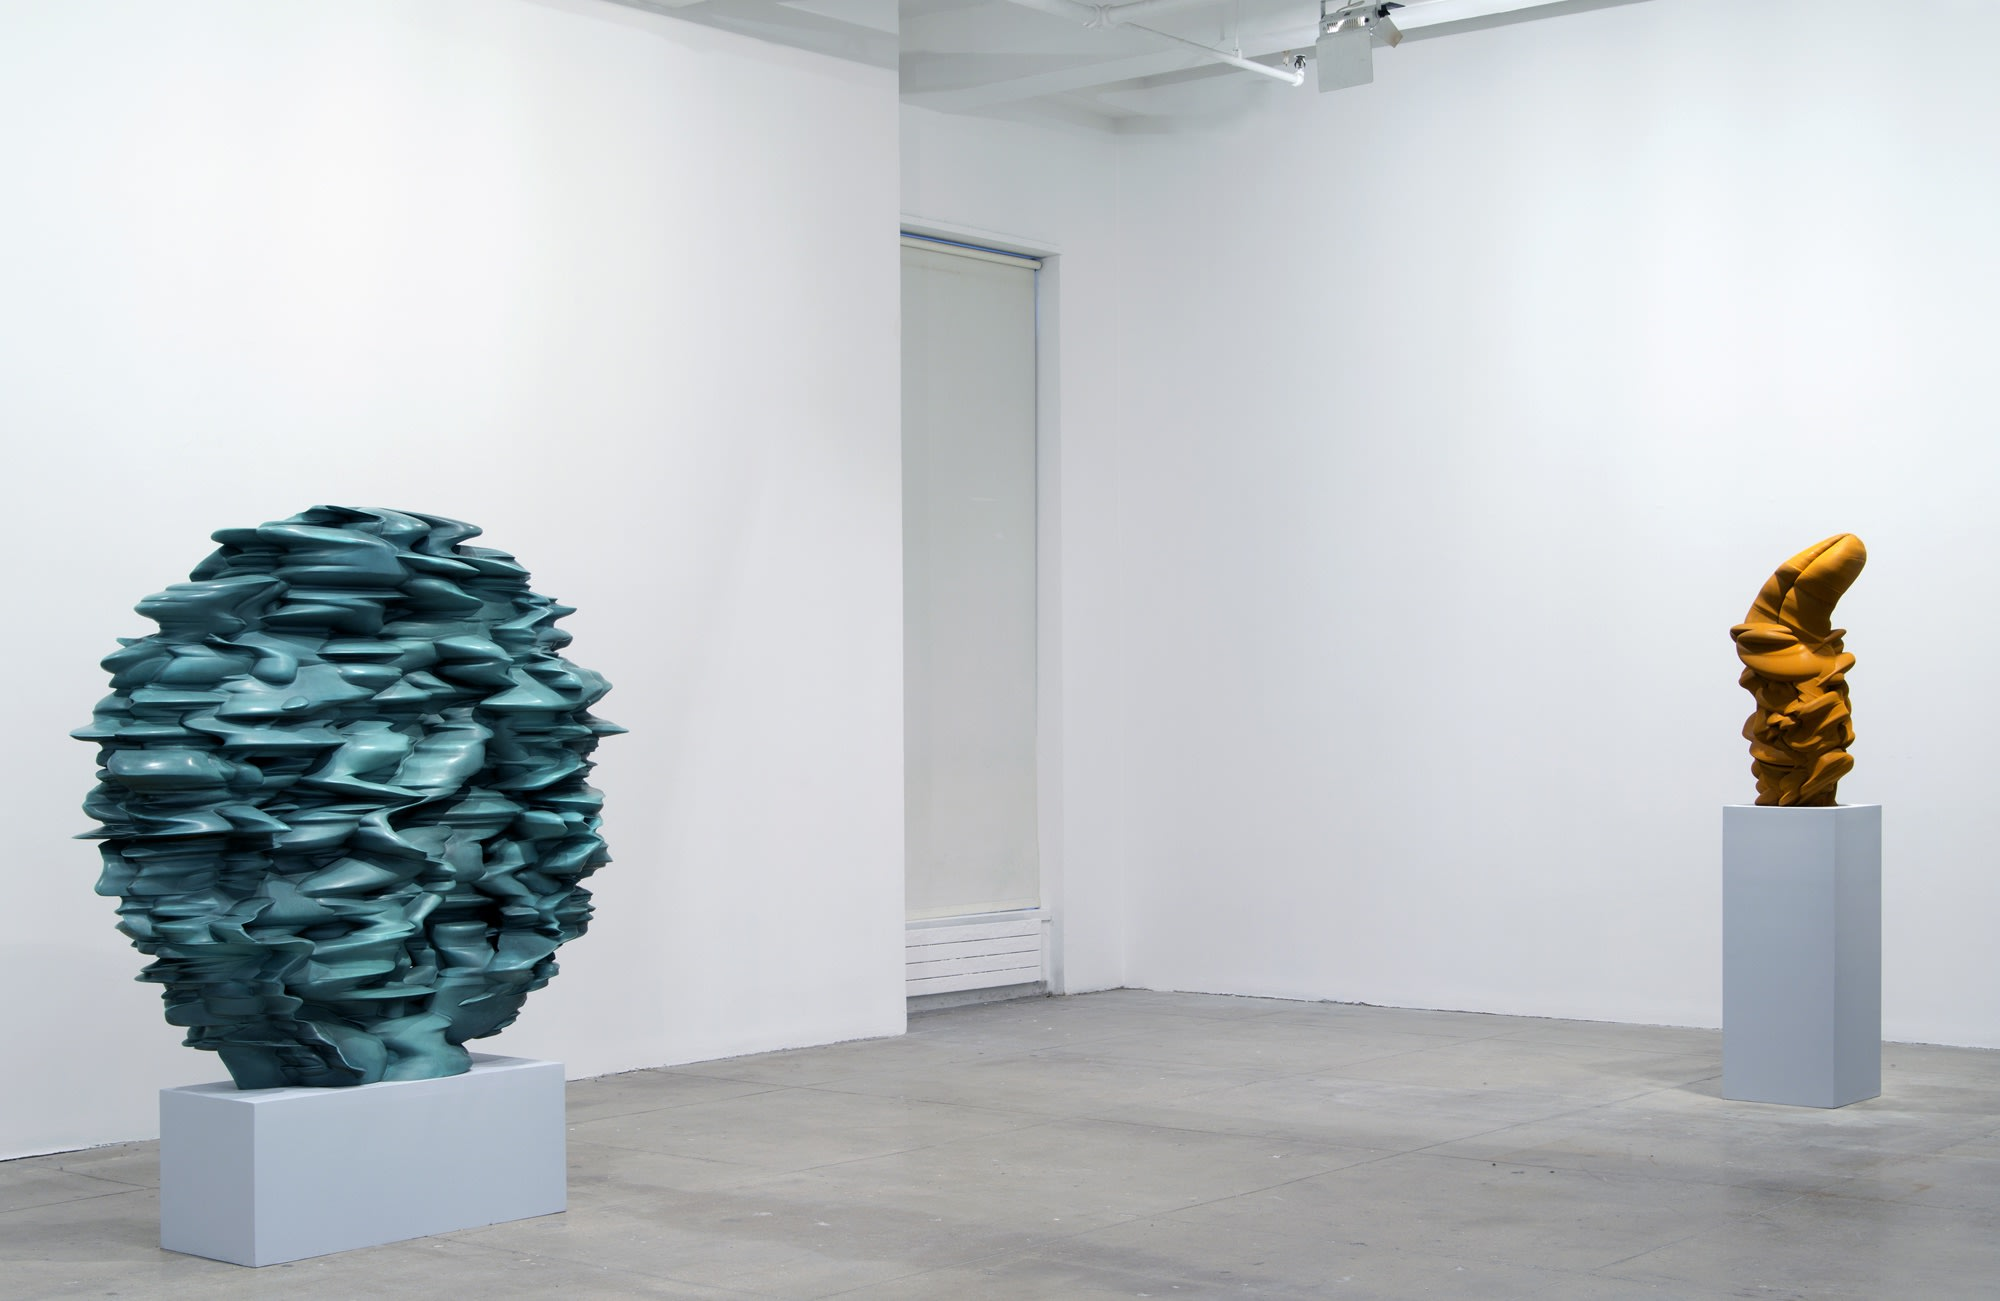 Two abstract sculptures sit on pedestals in a white room. The one on the left is spherical and light blue-green, while on the right the piece is vertical and orange-brown.